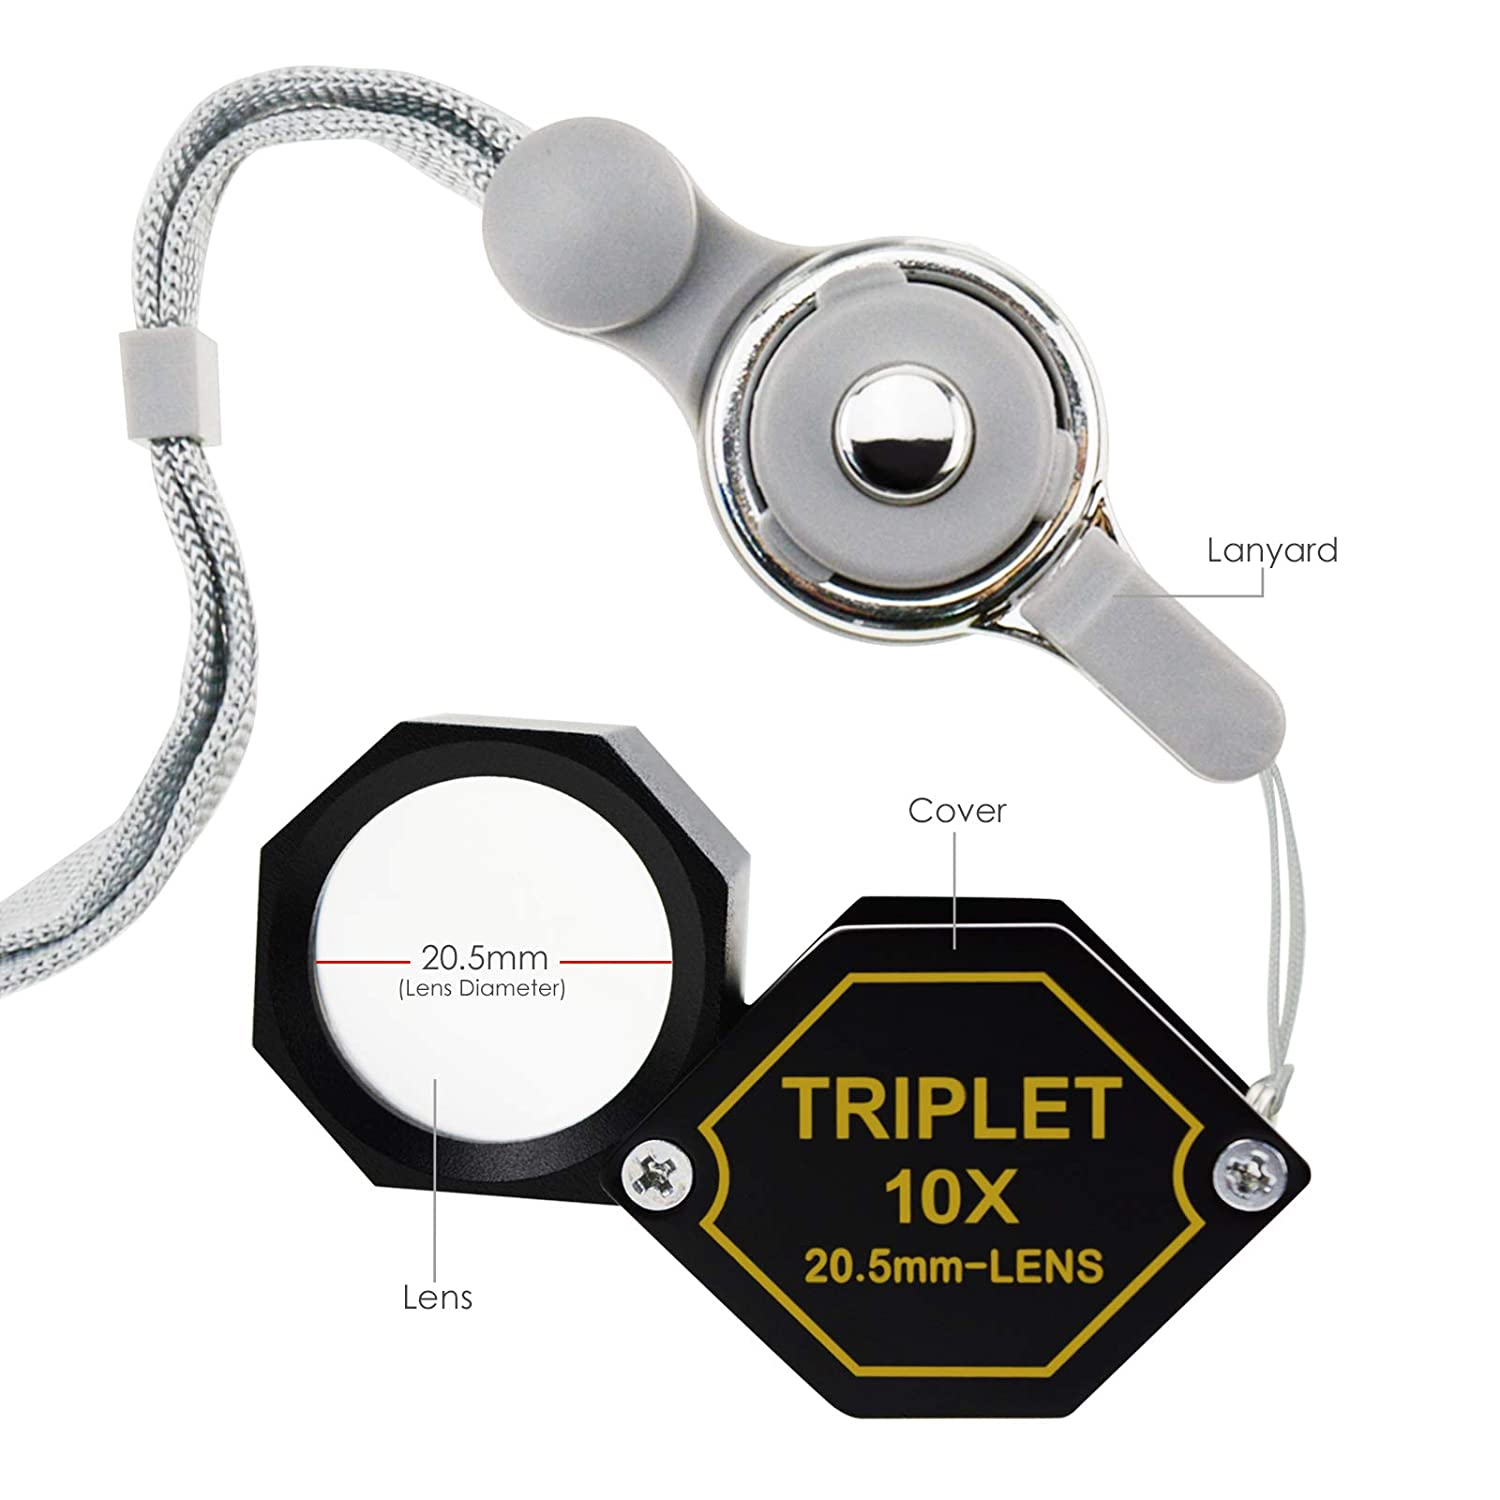 Aluminum Body Hexagonal Design Kit Set Magnification Loupe Black Frame 15x Jewelry Loupe Magnifier 20.5mm Triplet Lens Achromatic Optical Glass Magnifying Tool Metal